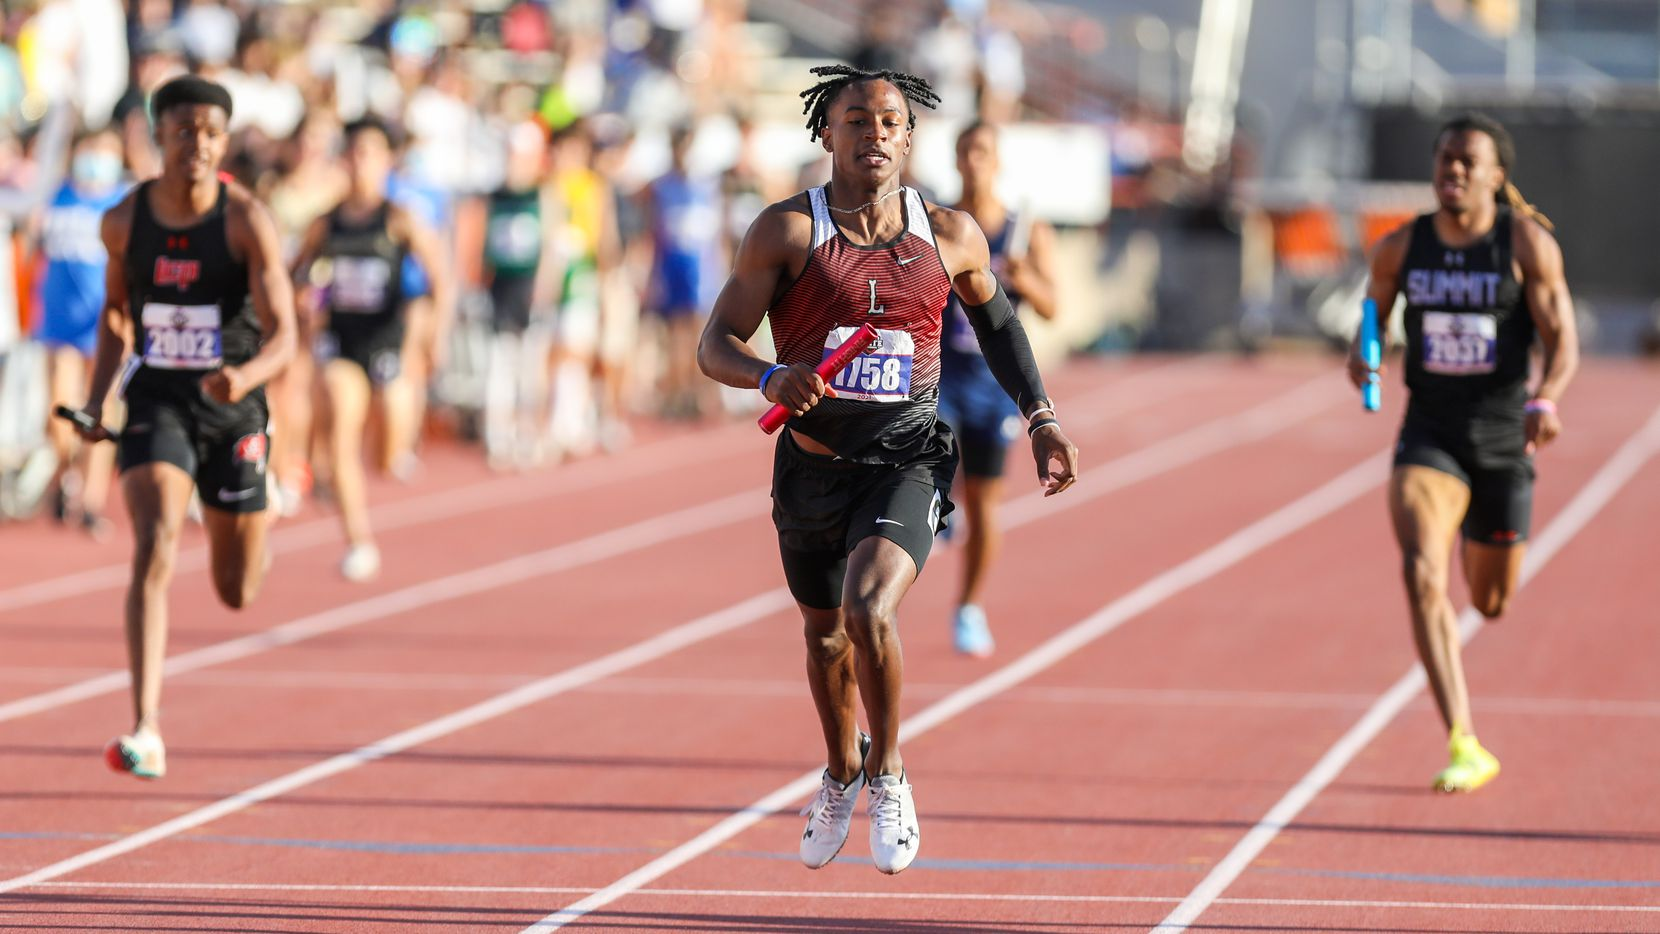 Frisco Liberty's Evan Stewart runs towards the finish line in the 5A Boys 4x200 relay during the UIL state track meet at the Mike A. Myers Stadium, at the University of Texas on May 7, 2021 in Austin, Texas. Frisco Liberty placed second in the event.